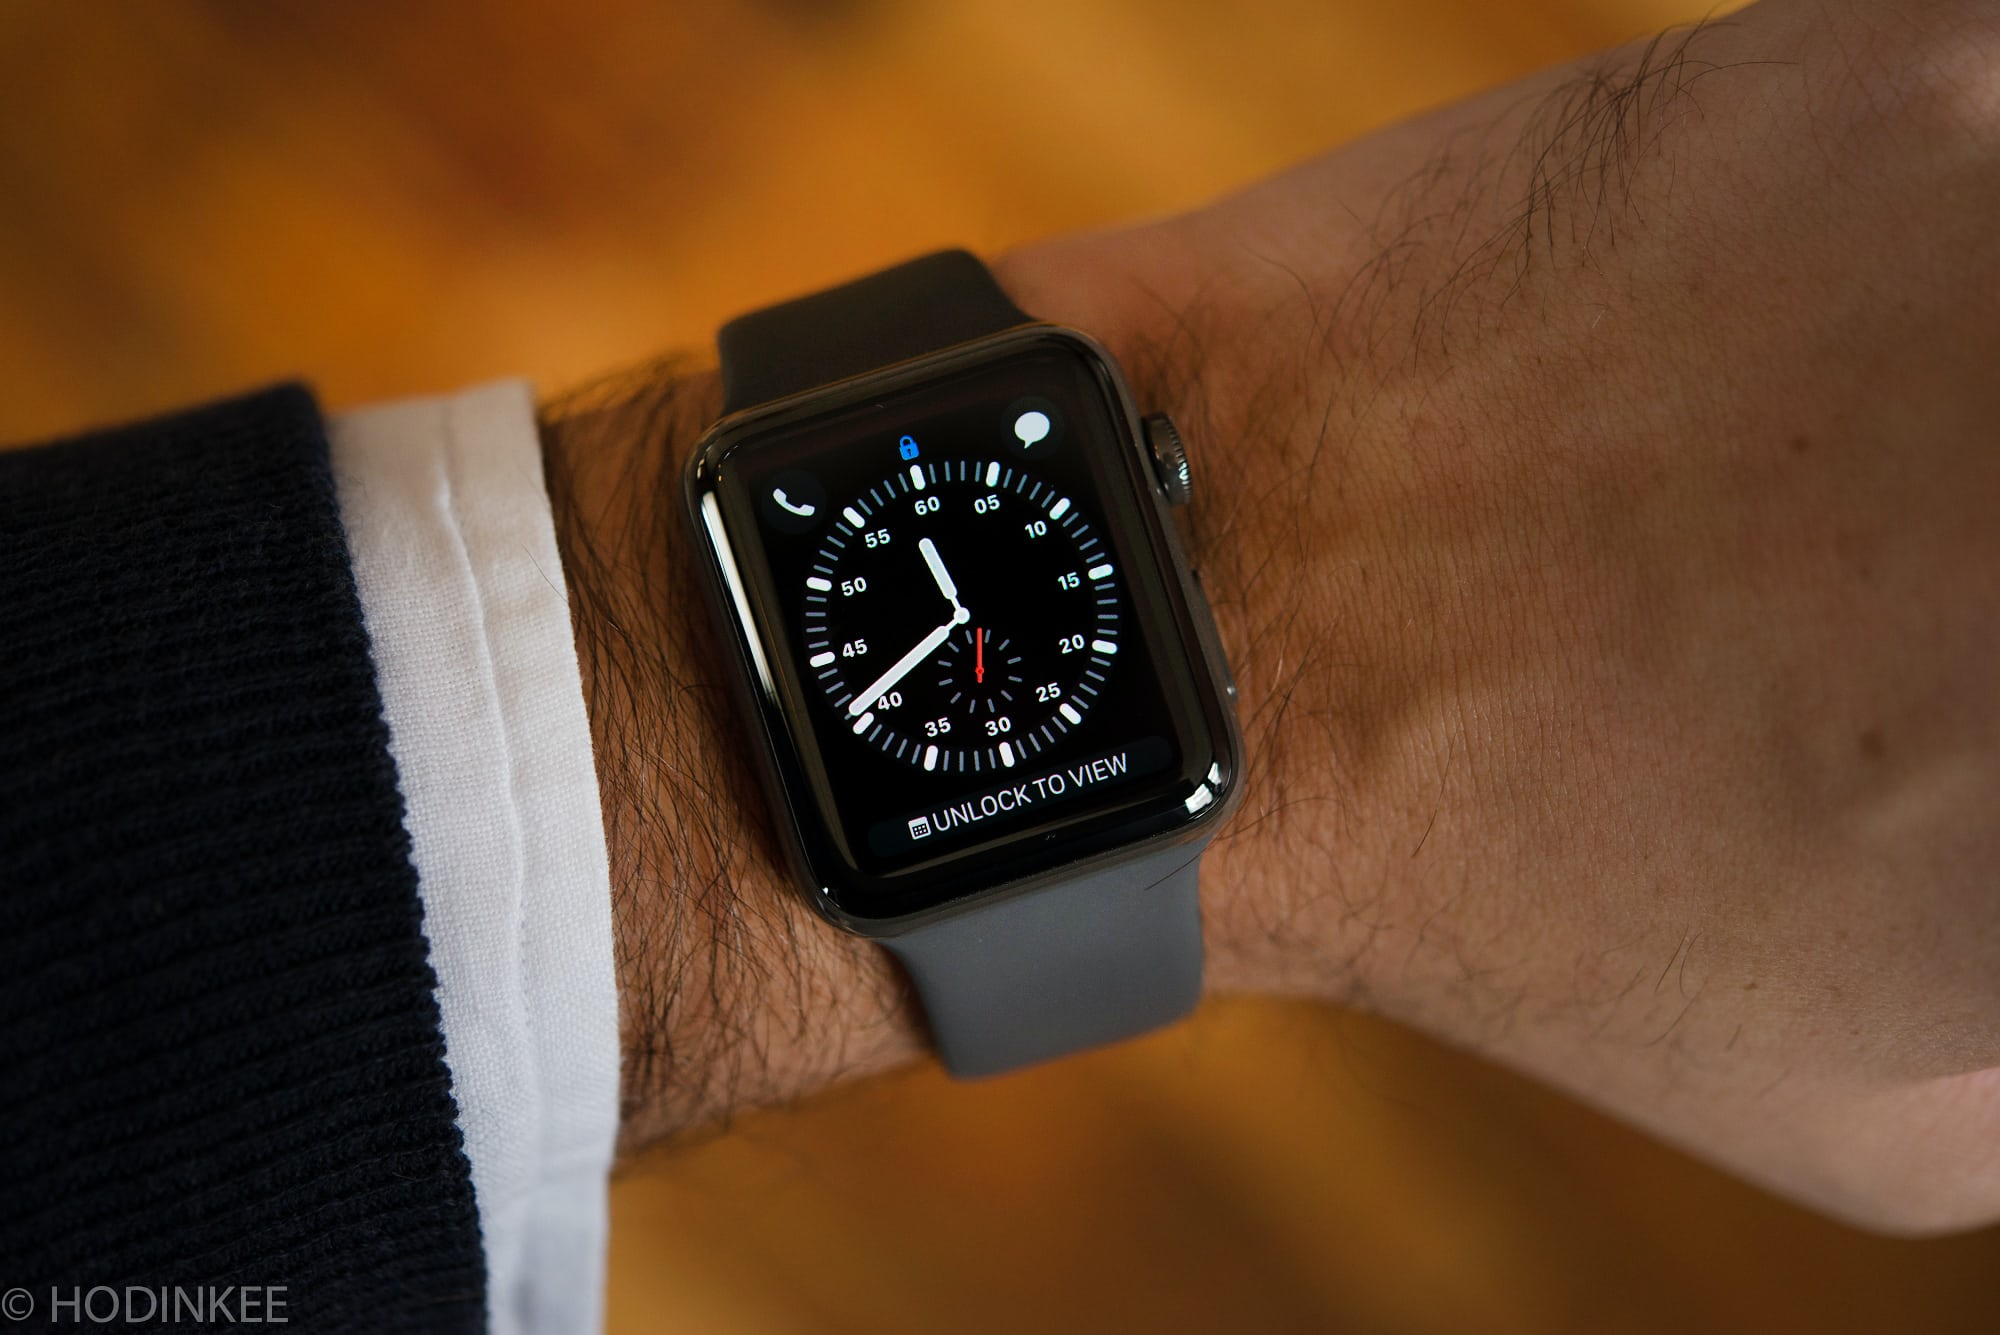 c0f70eb51e9 A Week On The Wrist  The Apple Watch Series 3 Edition A Week On The